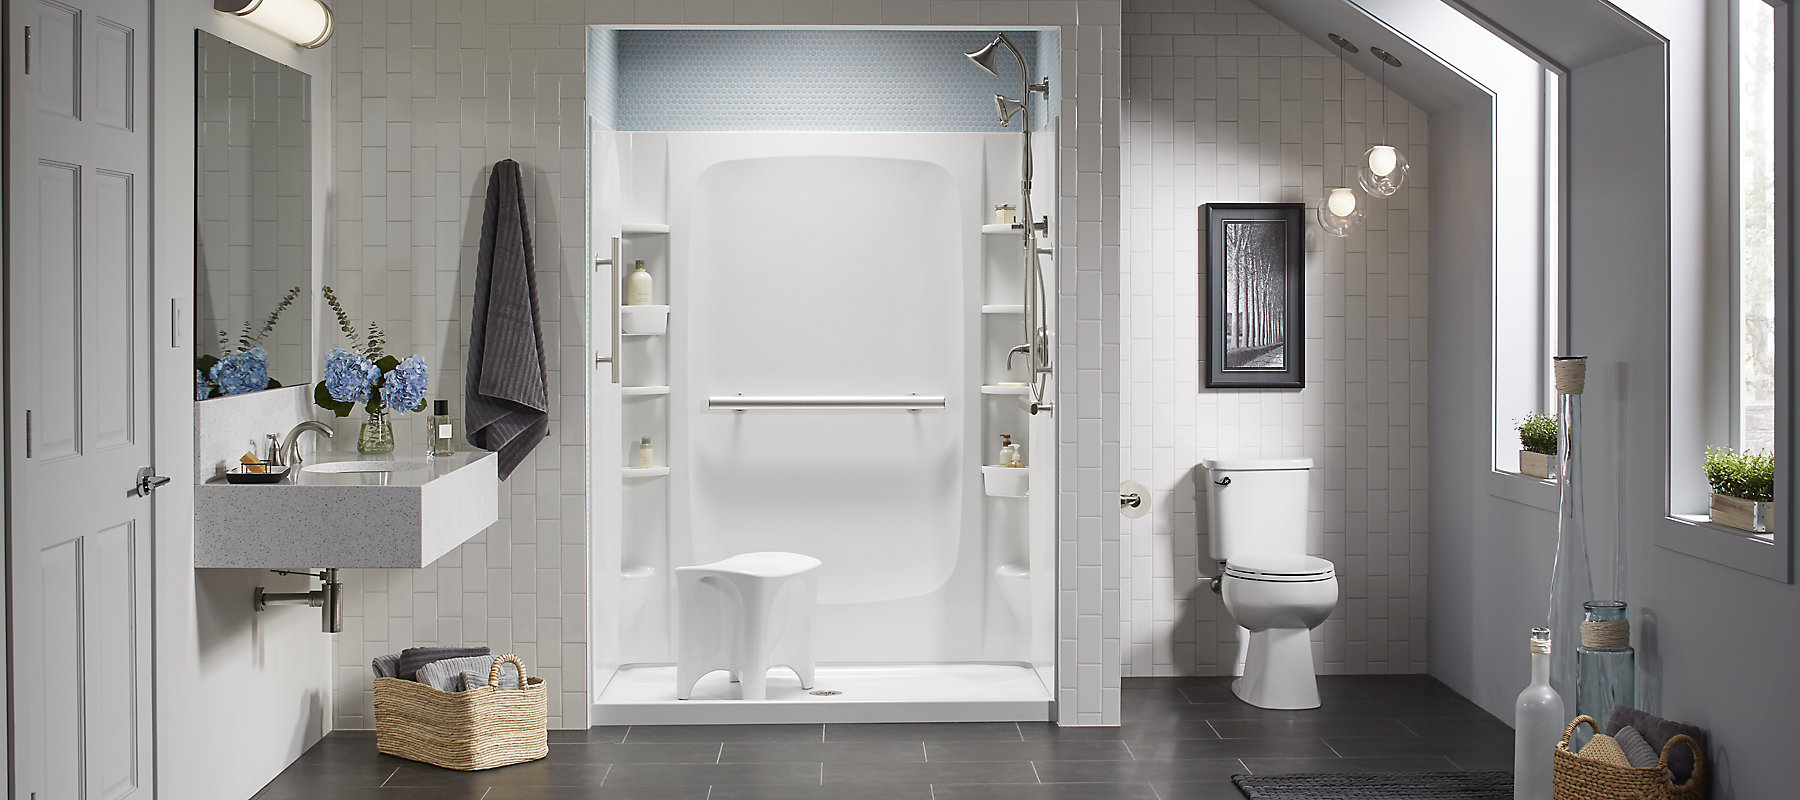 Make Your Bathroom Perfect for Any Age